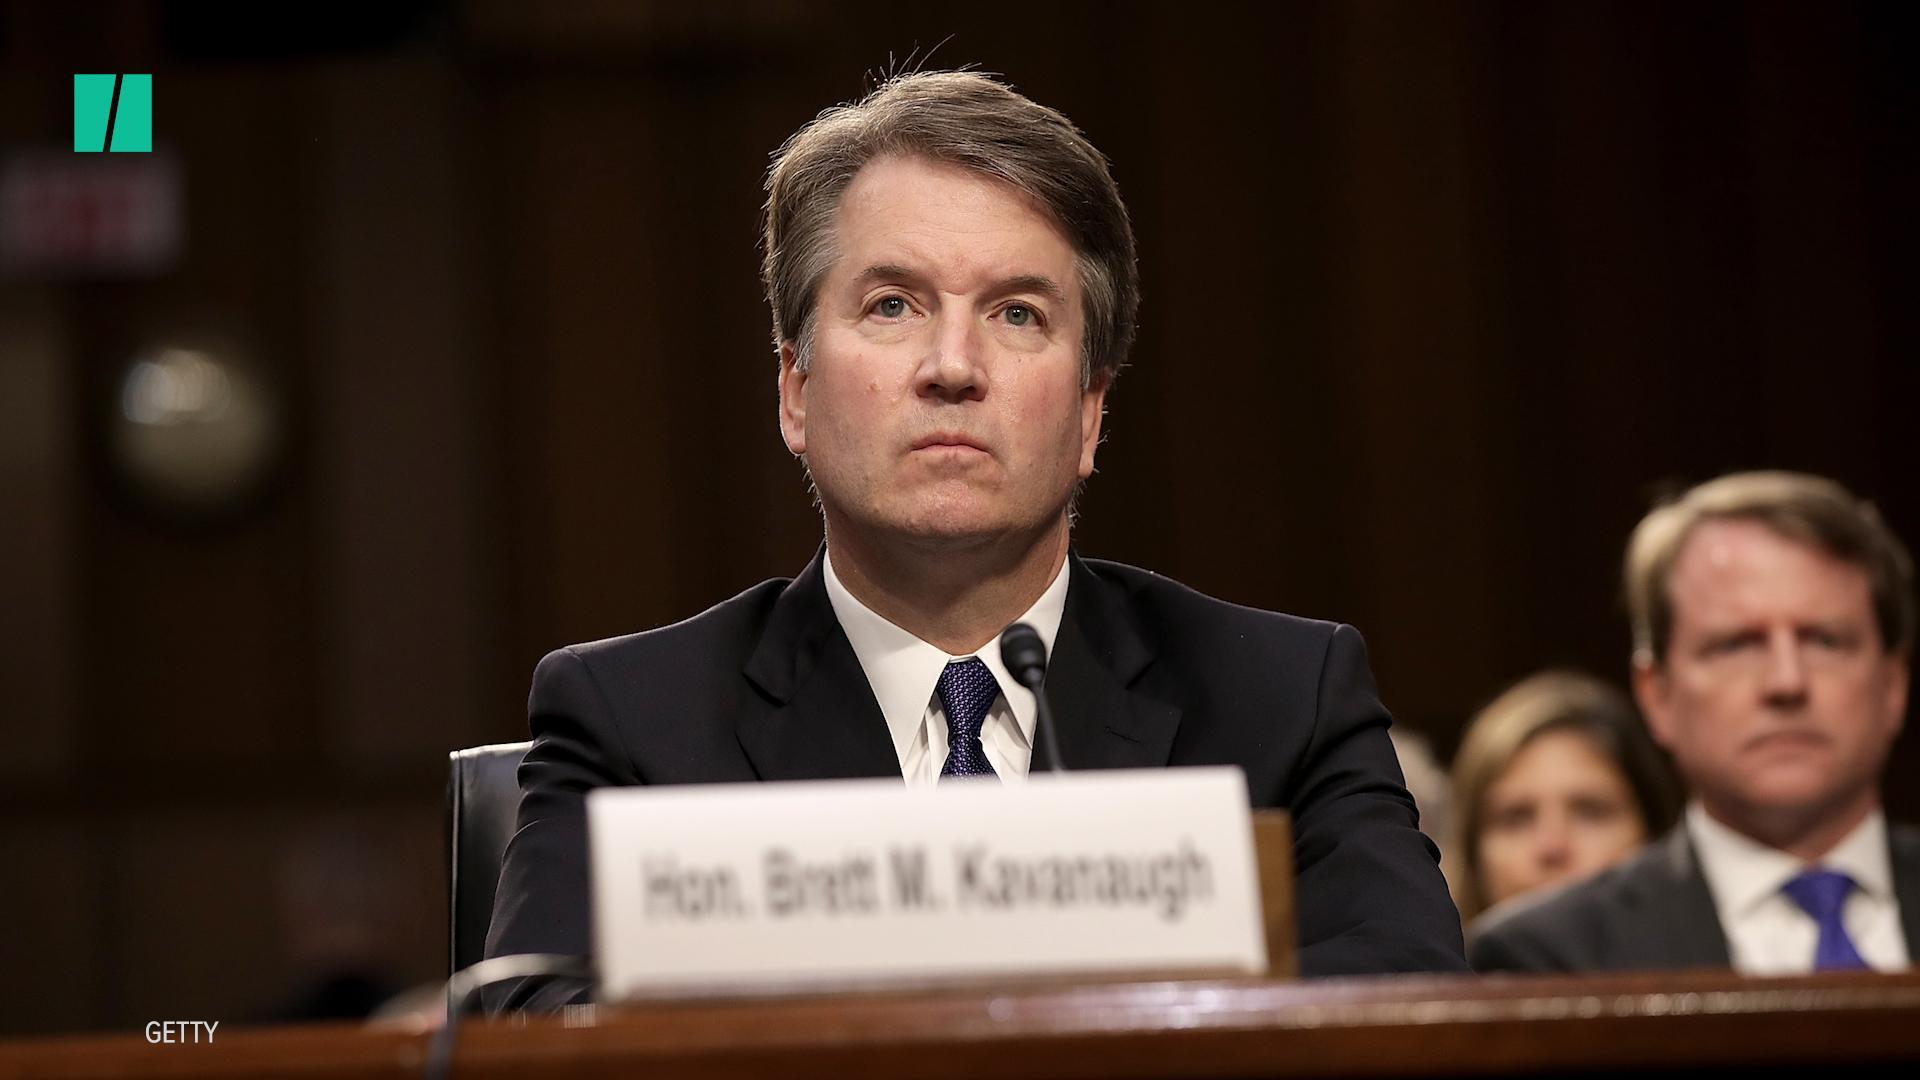 NYT Reporters Say They Uncovered New Sexual Misconduct Claim Against Kavanaugh